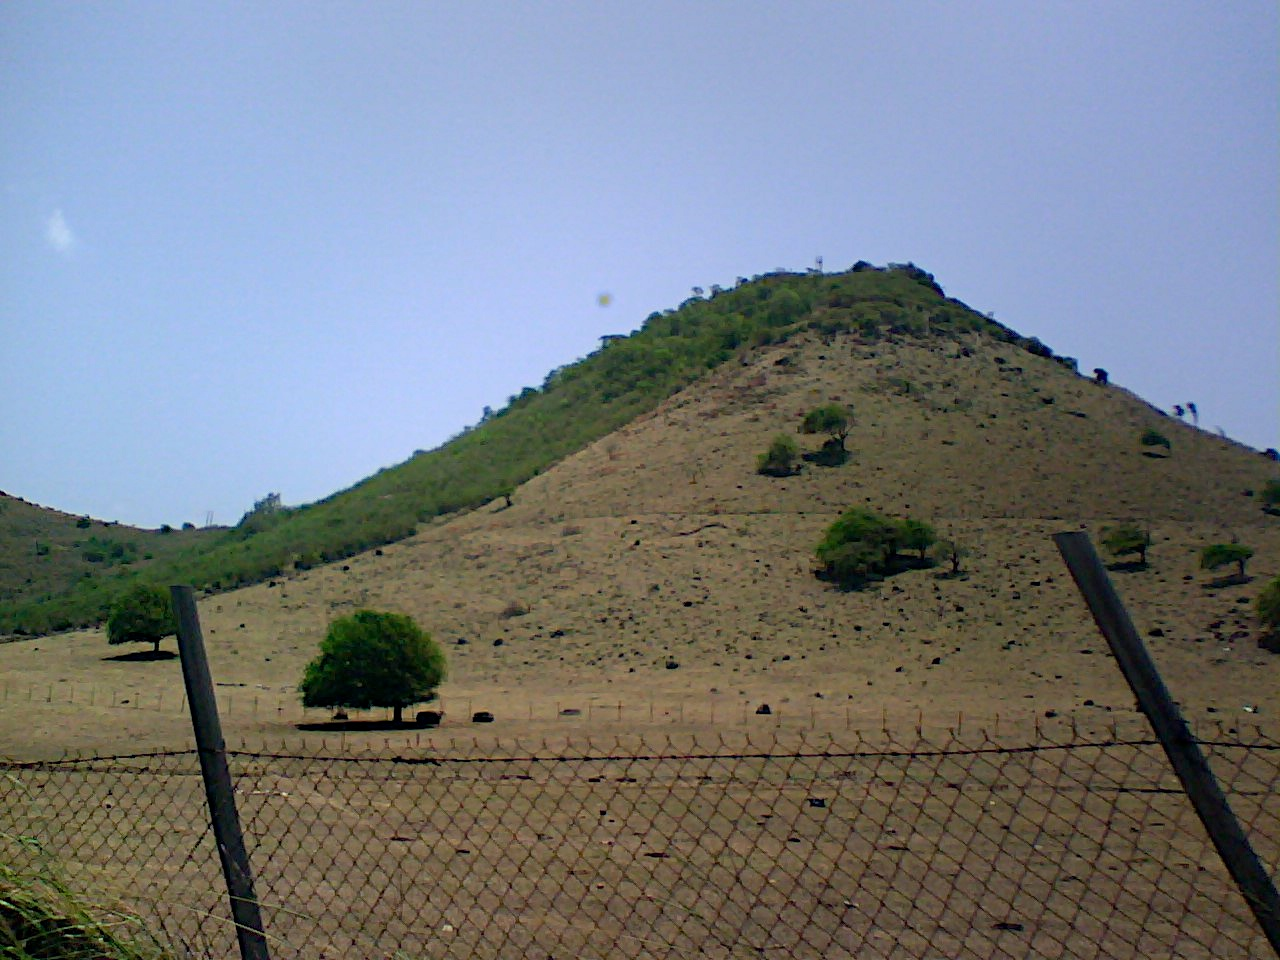 Looks like the cows only graze on one side of the hill.